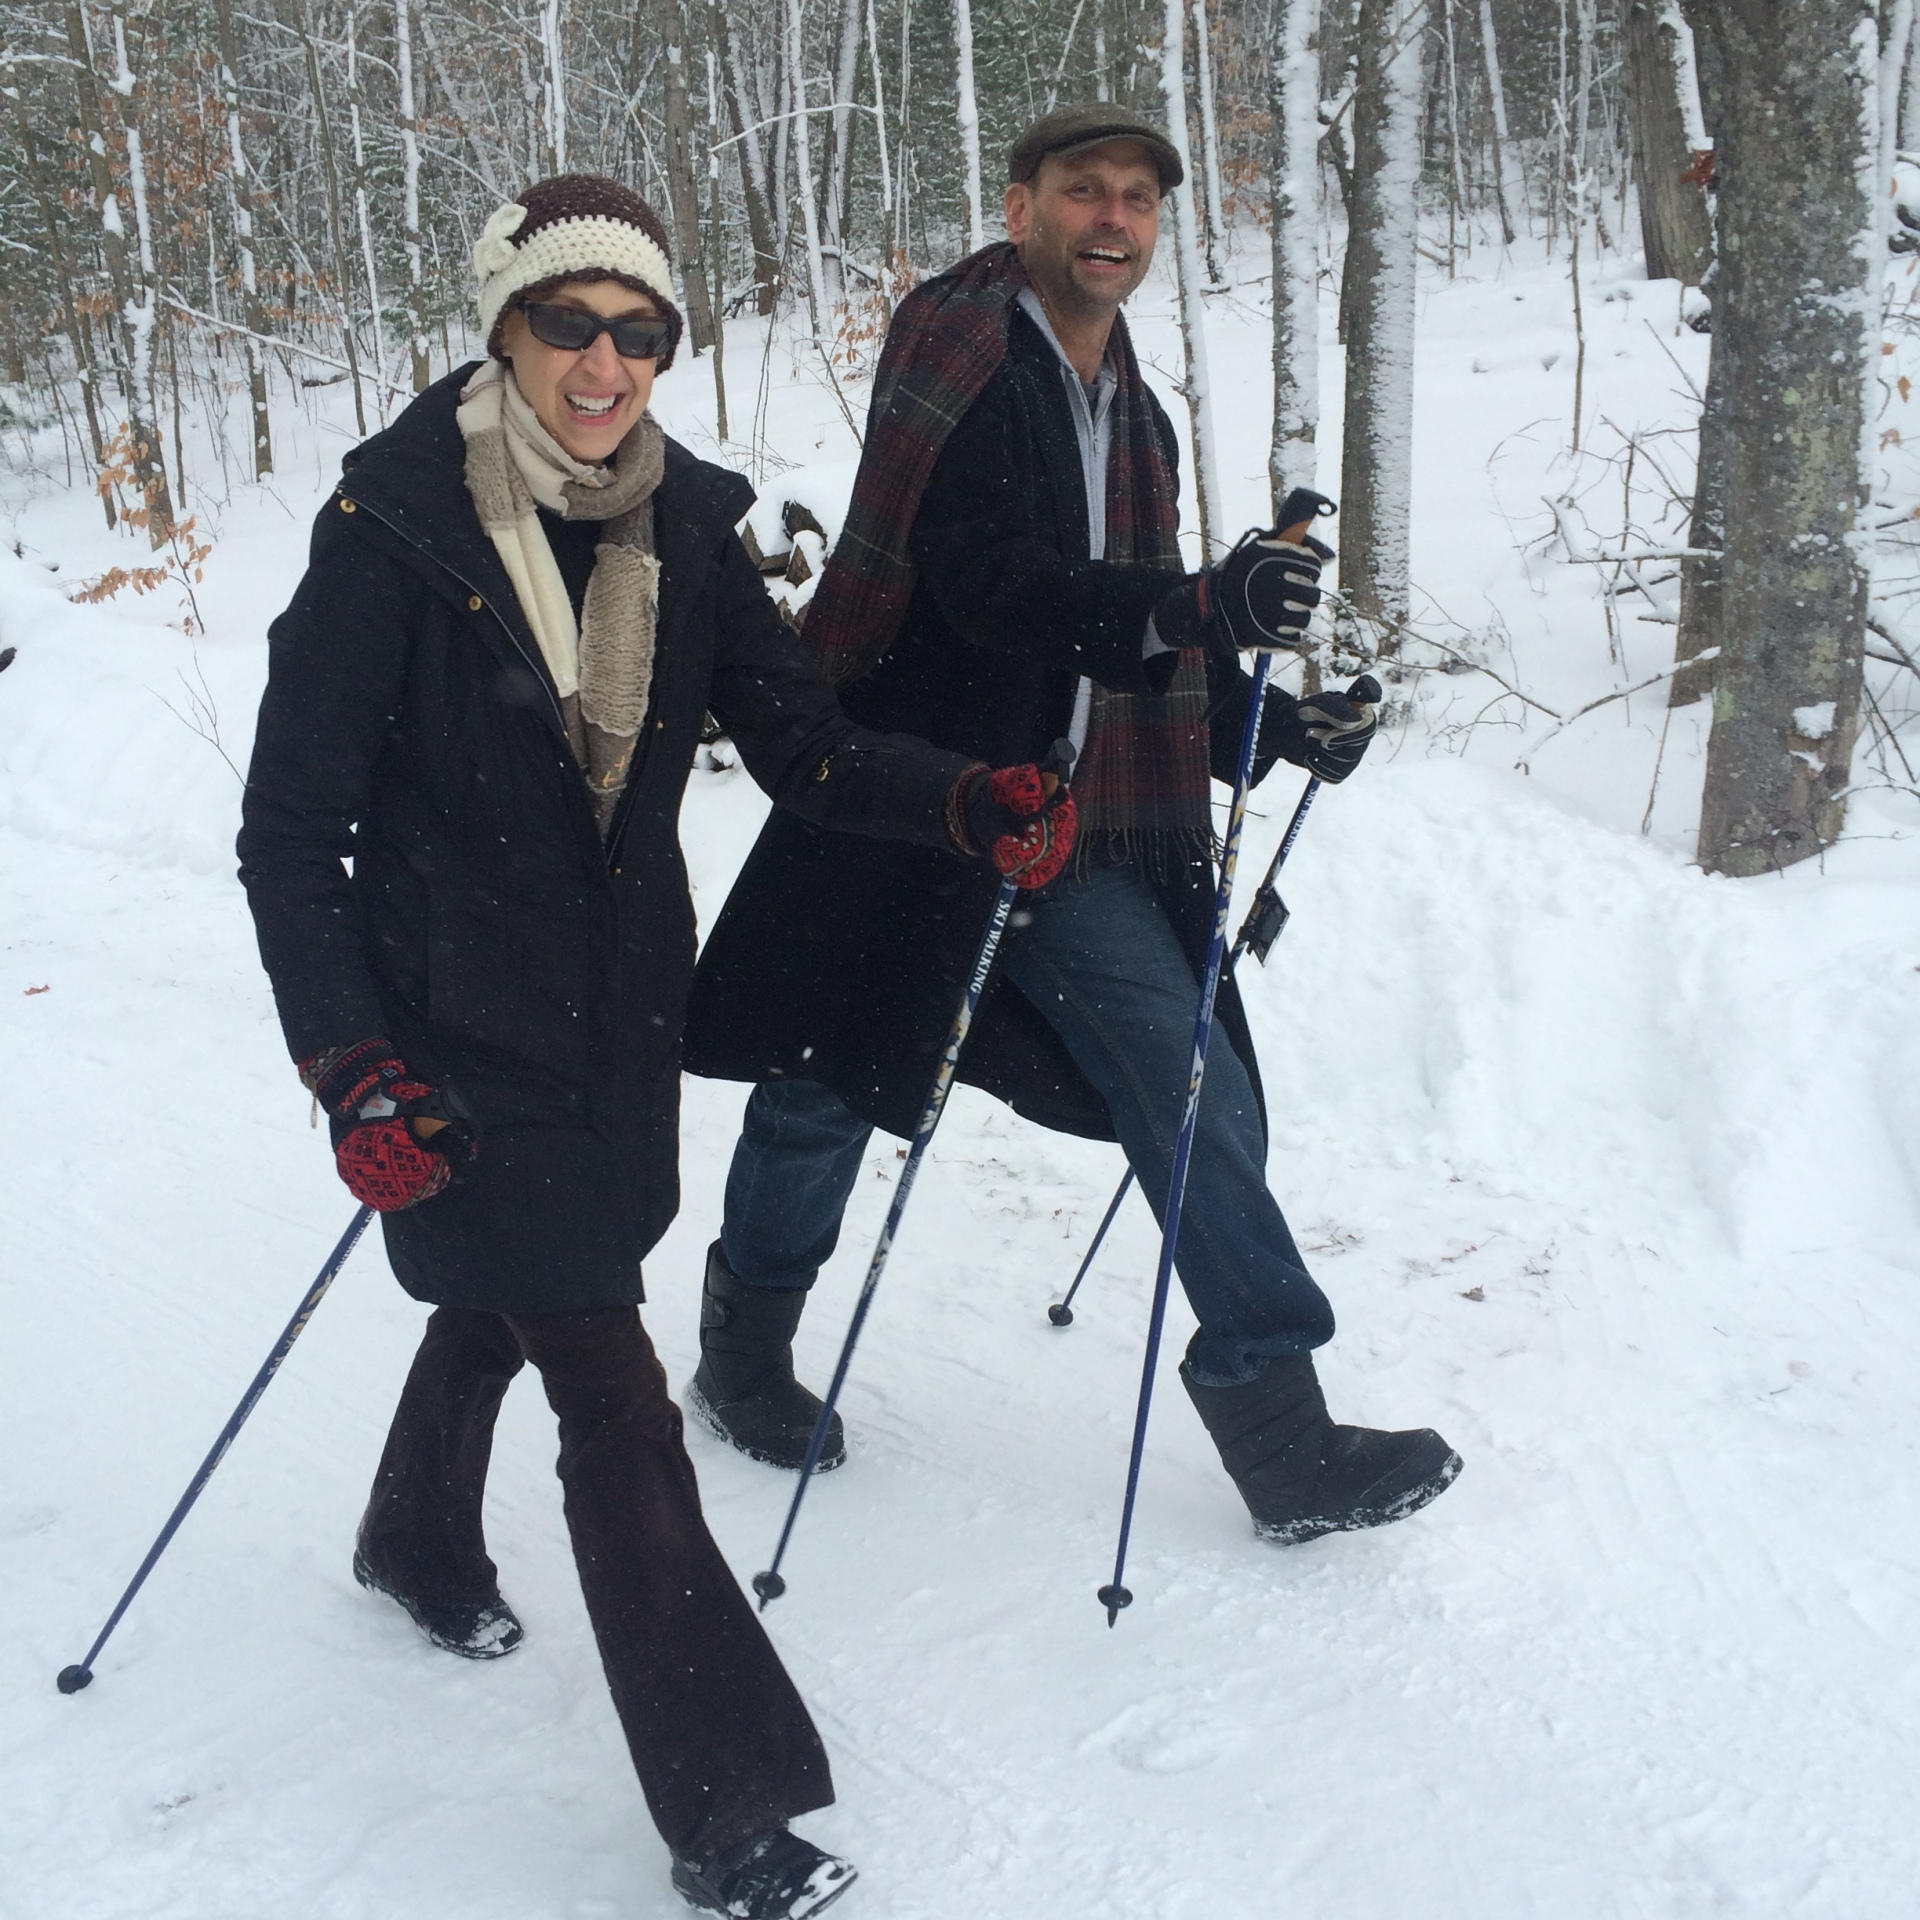 Nordic Walking Poles for all seasons. Hiking and trekking. The next best thing to Nordic Skiing - cross country skiing.